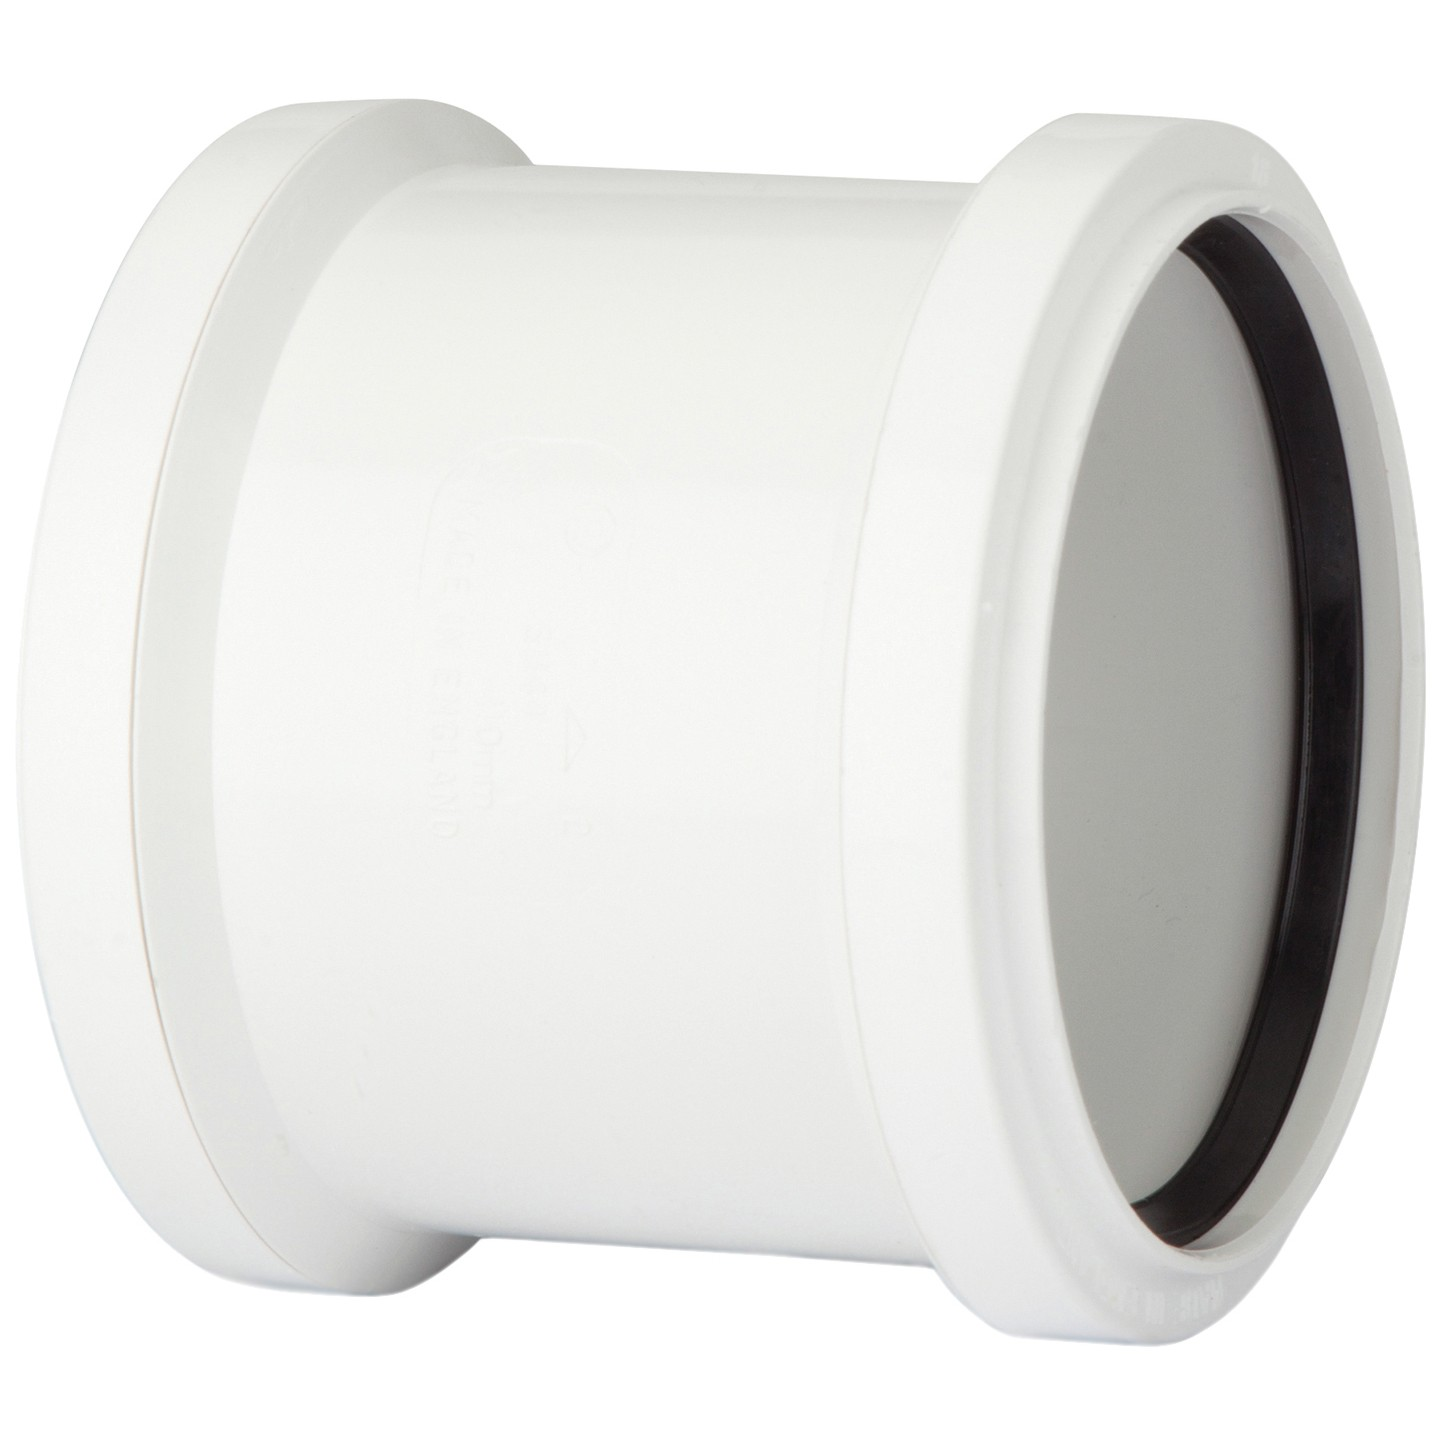 Polypipe 110mm Soil Double Socket Coupler - White